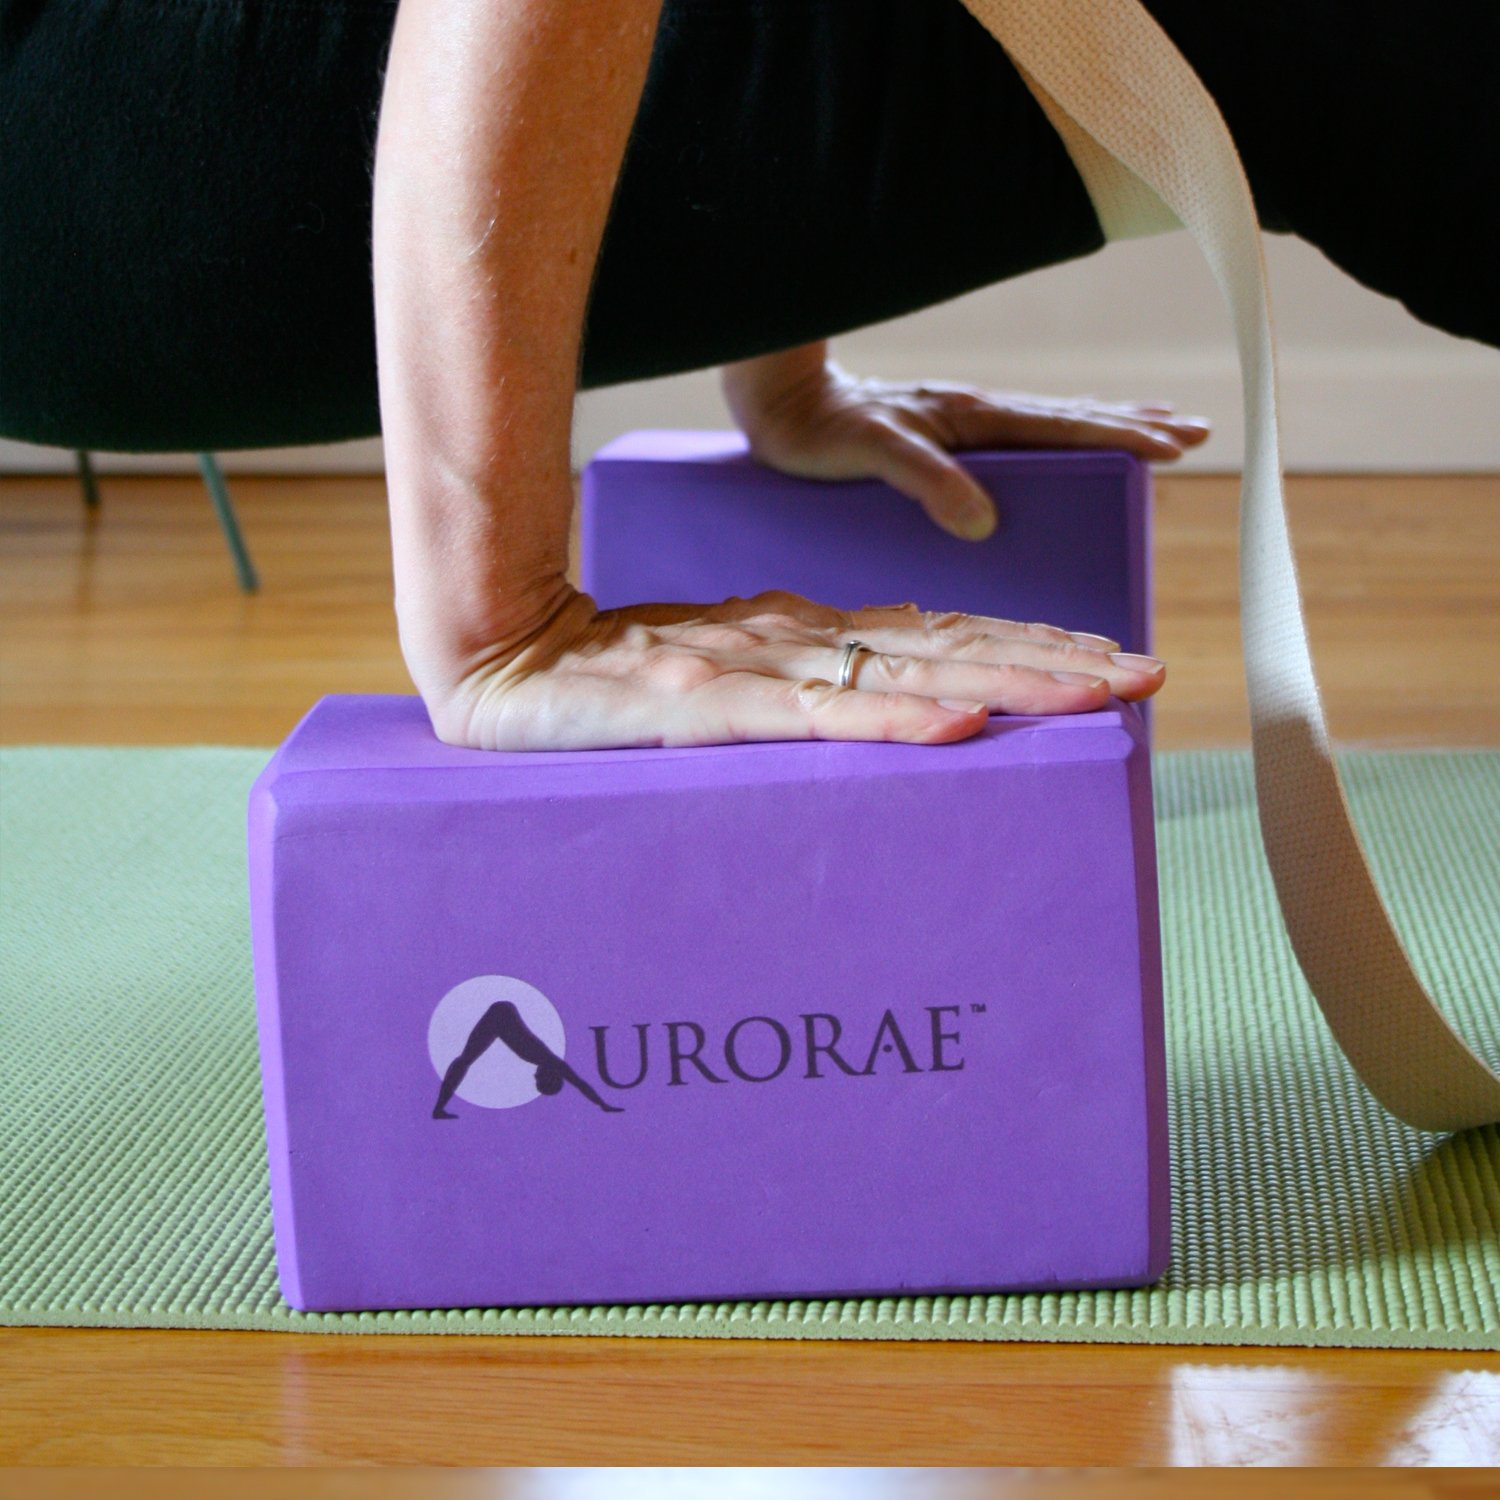 Aurorae Yoga 3 Piece Bundle includes Yoga Block, Strap and Slip Free Rosin